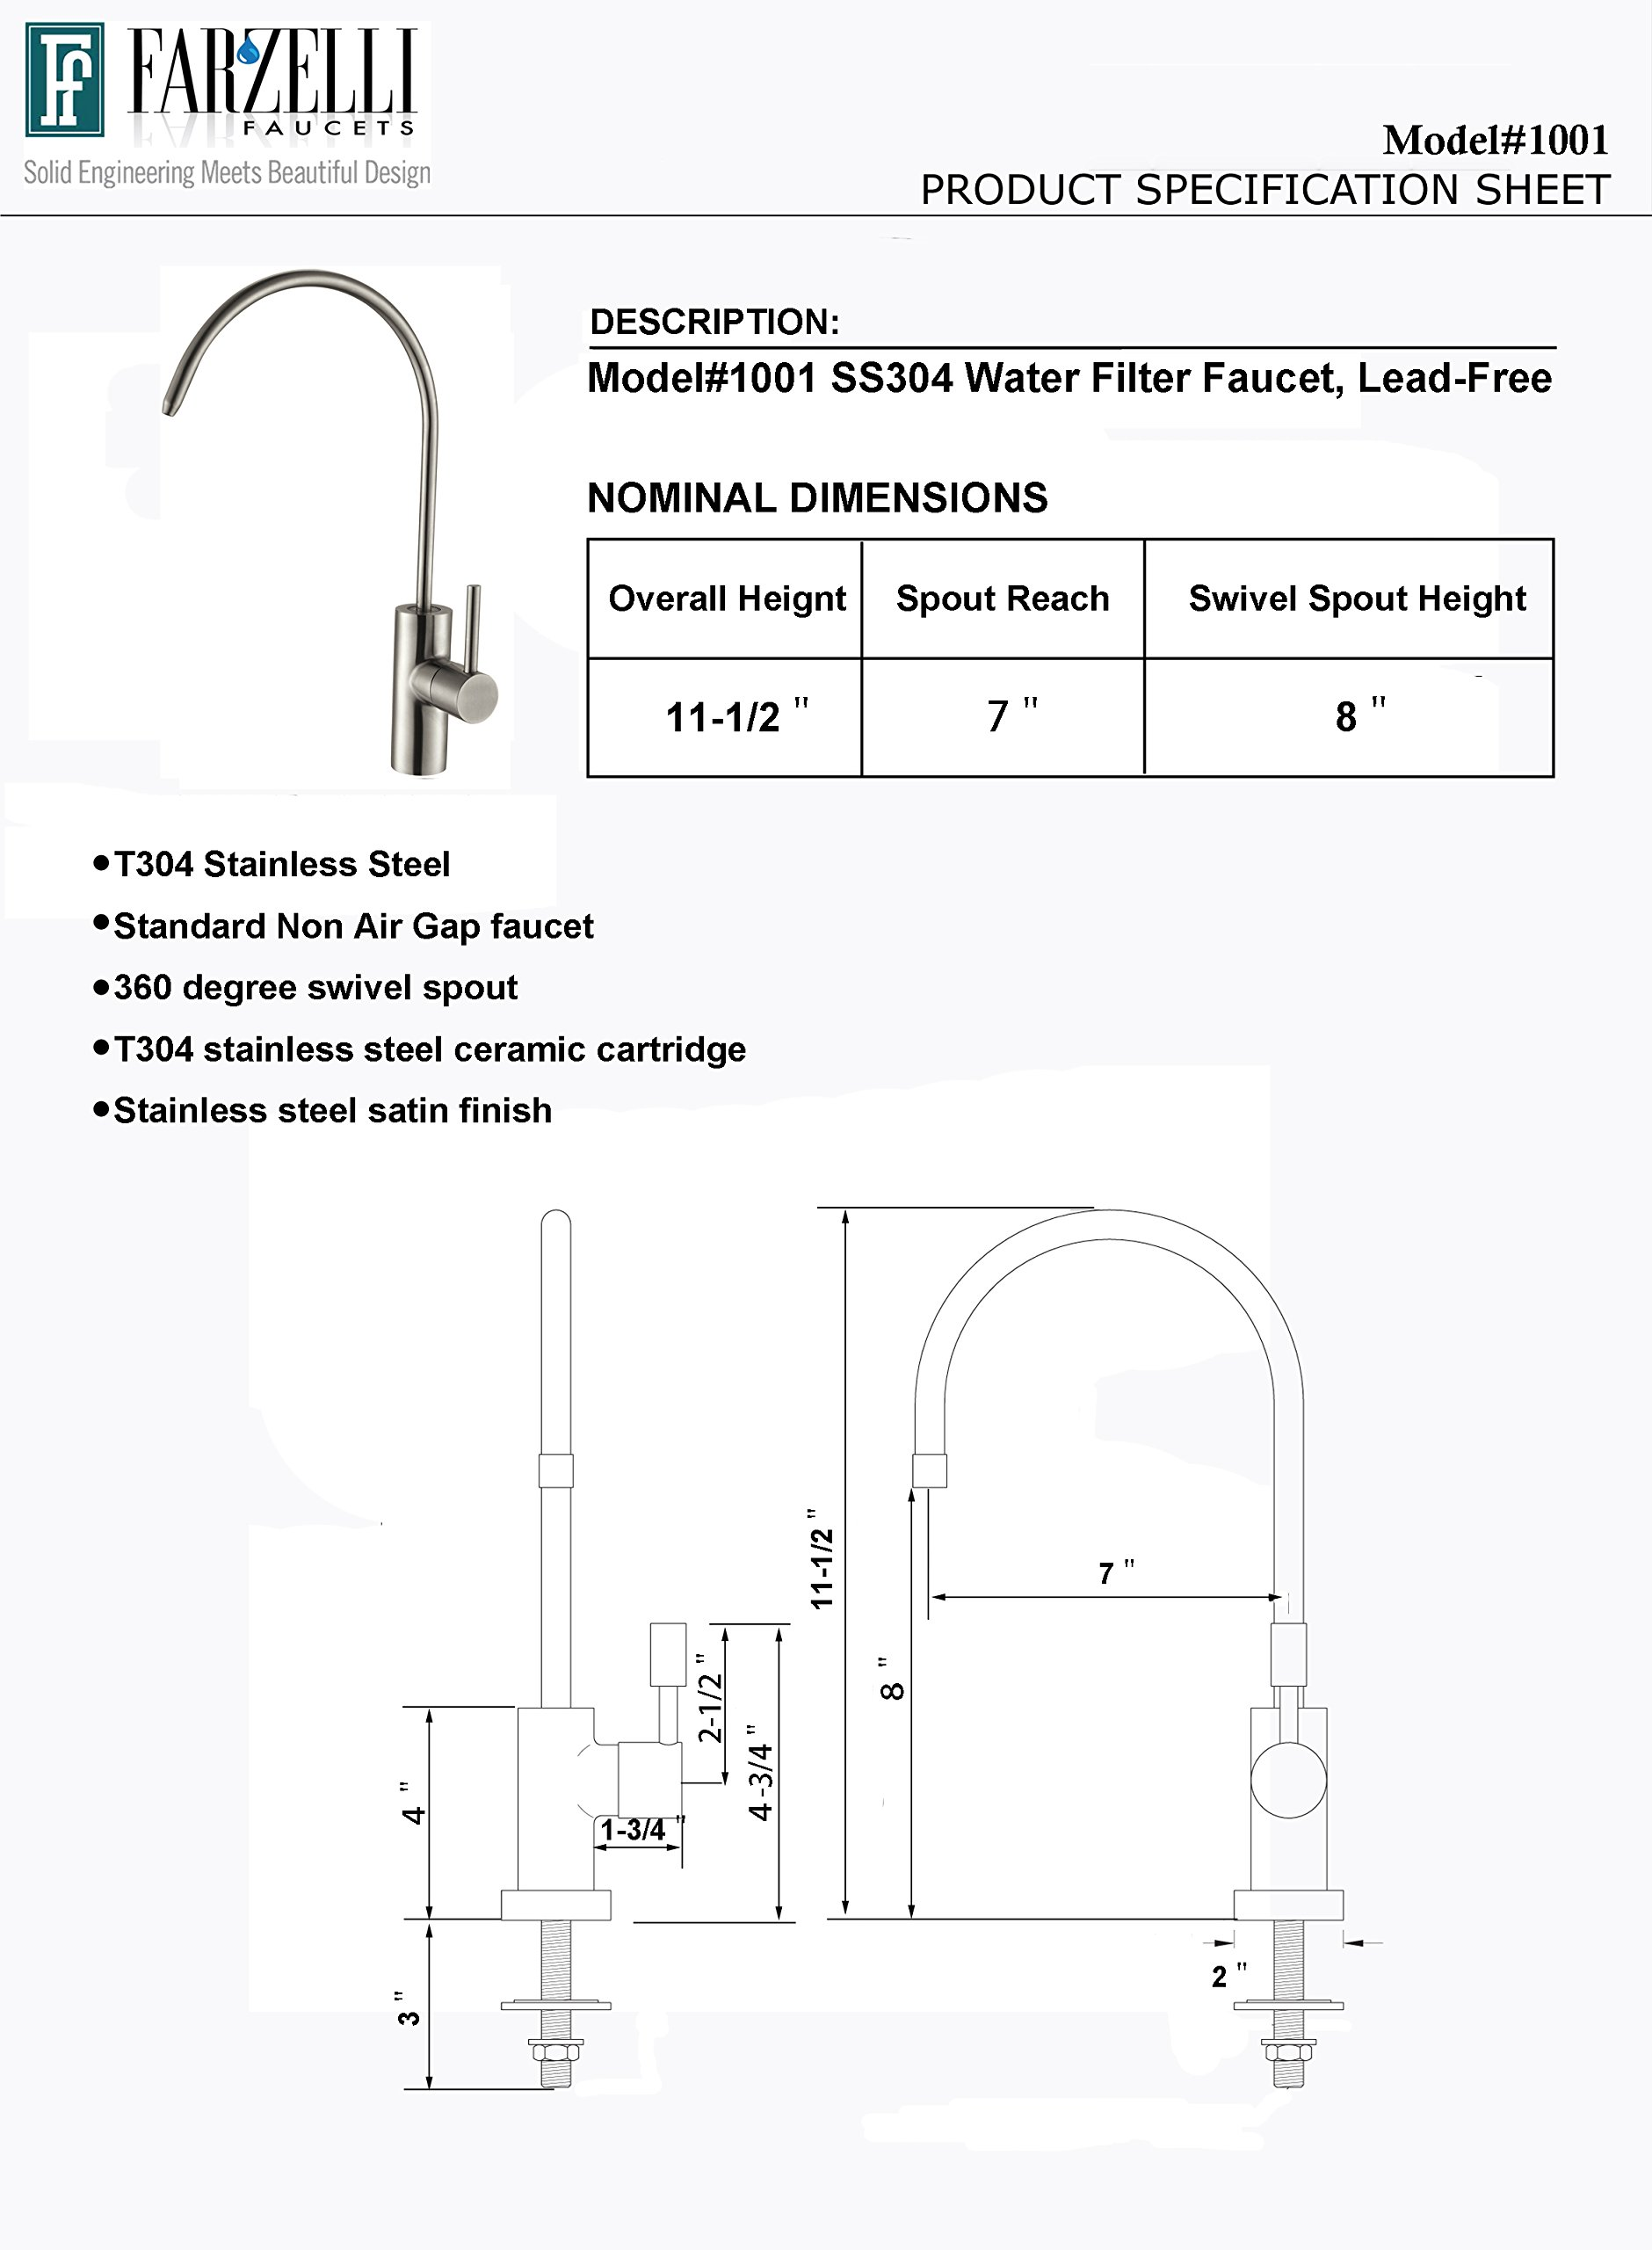 Water Filter Purifier Faucet Lead Free Drinking Water Dispensing Faucet